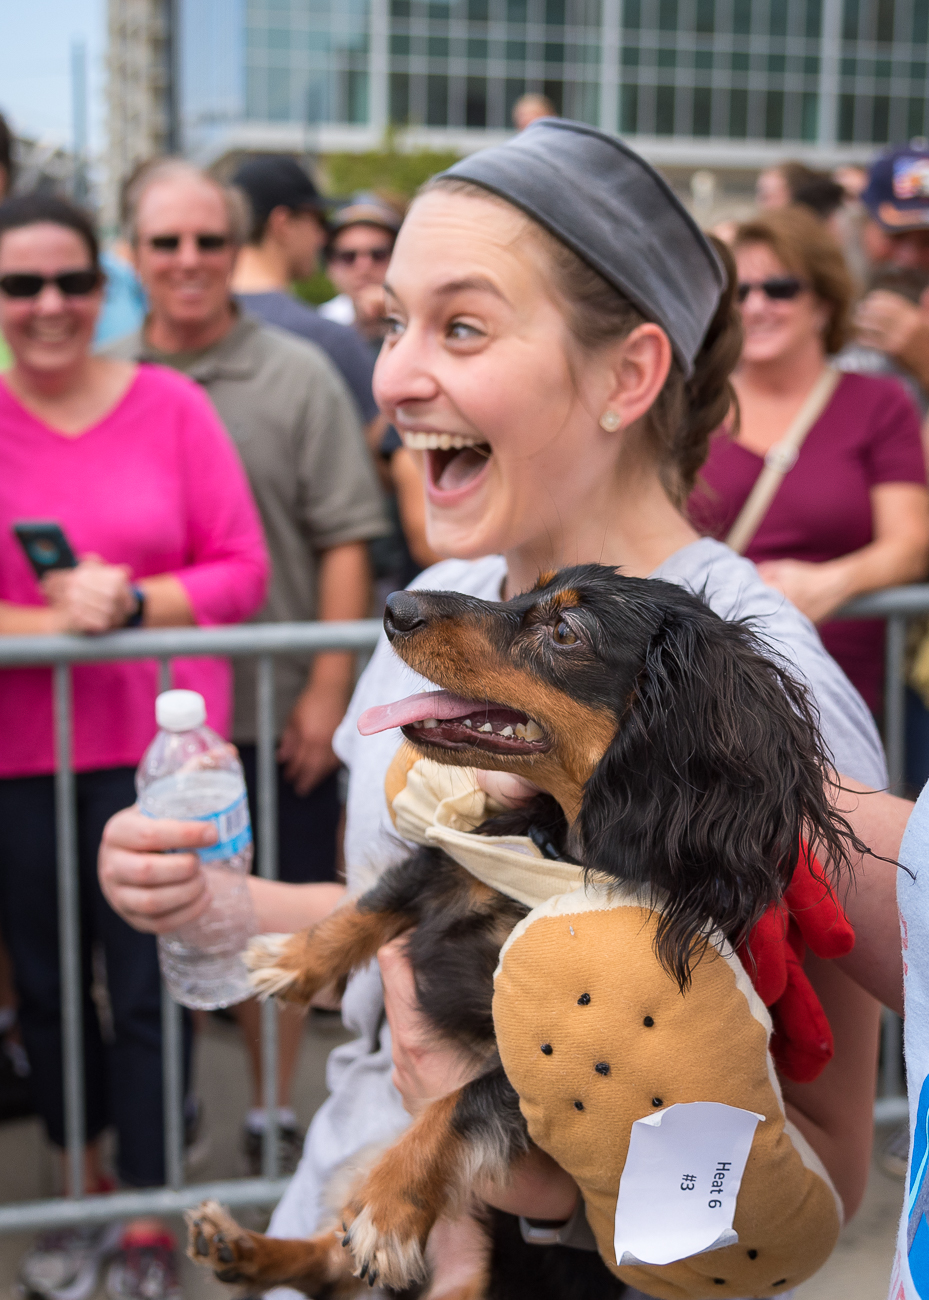 Gloria McNerney was all smiles as her dachshund, Frankie, was crowed the winner of this year's Running of the Wieners. / Image: Phil Armstrong, Cincinnati Refined // Published: 9.21.18